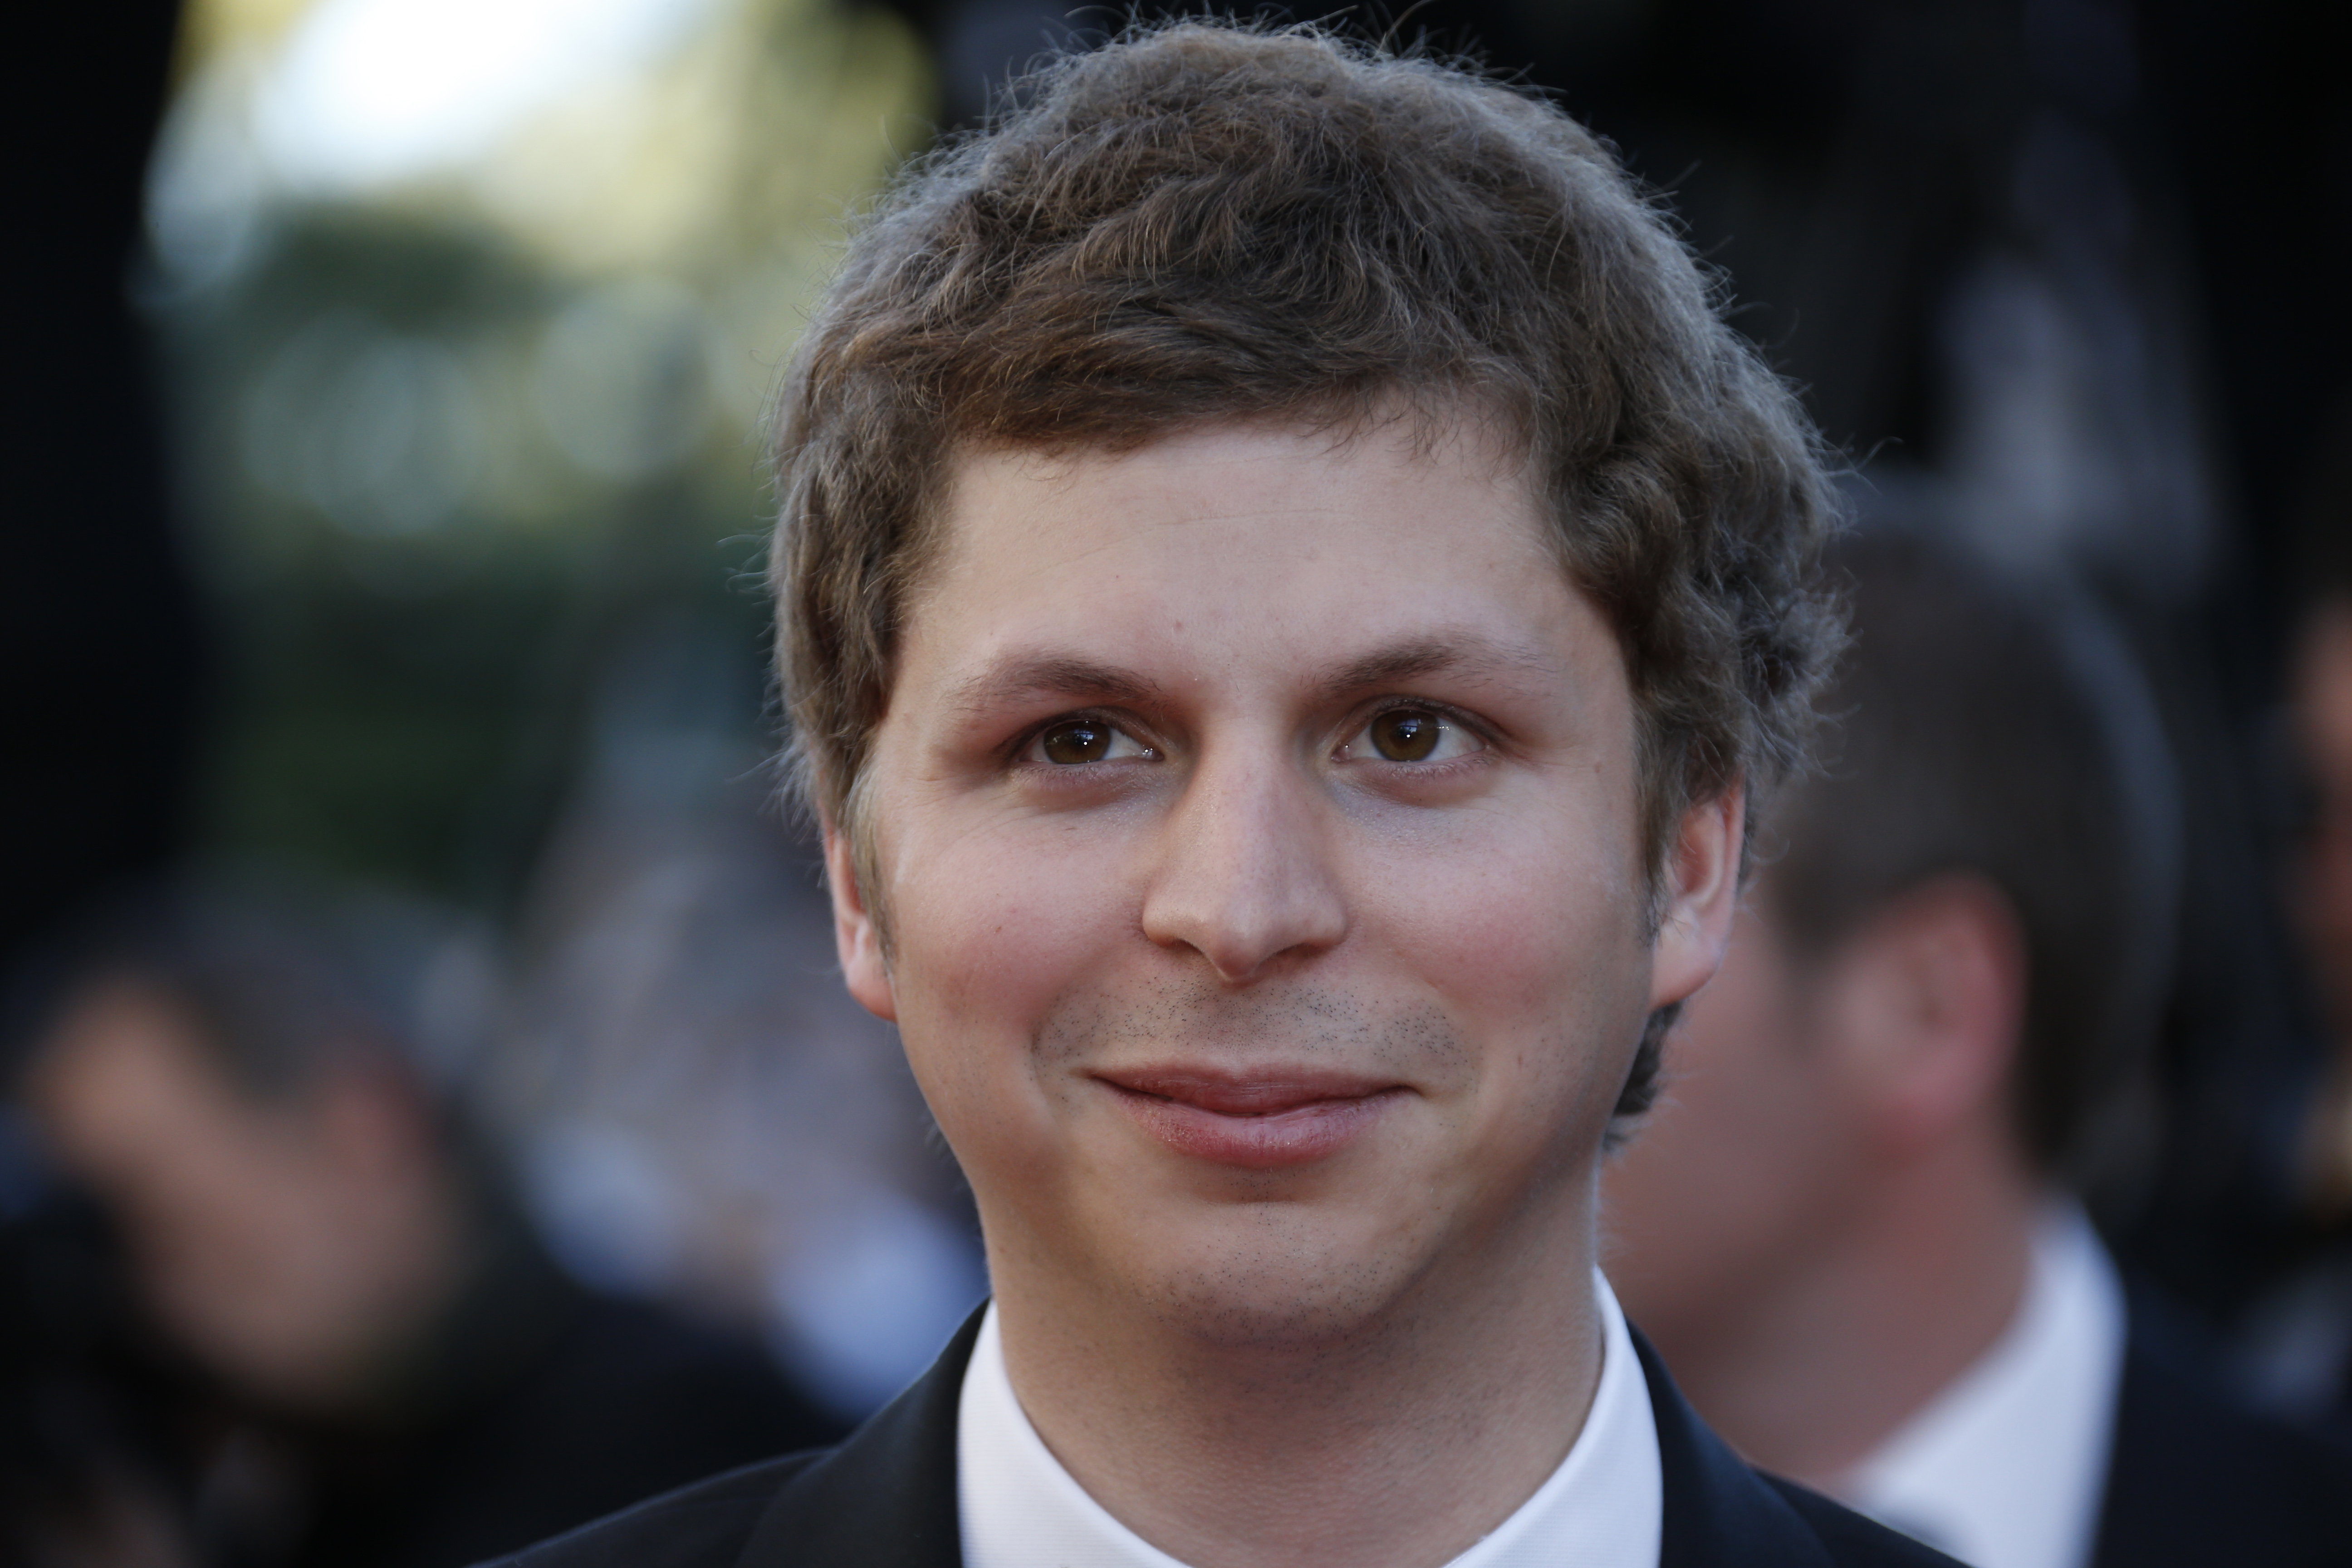 Canadian actor Michael Cera poses on May 24, 2013 as he arrives for the screening of the film  The Immigrant  presented in Competition at the 66th edition of the Cannes Film Festival in Cannes. Cannes, one of the world's top film festivals, opened on May 15 and will climax on May 26 with awards selected by a jury headed this year by Hollywood legend Steven Spielberg.      AFP PHOTO / VALERY HACHE        (Photo credit should read VALERY HACHE/AFP/Getty Images)